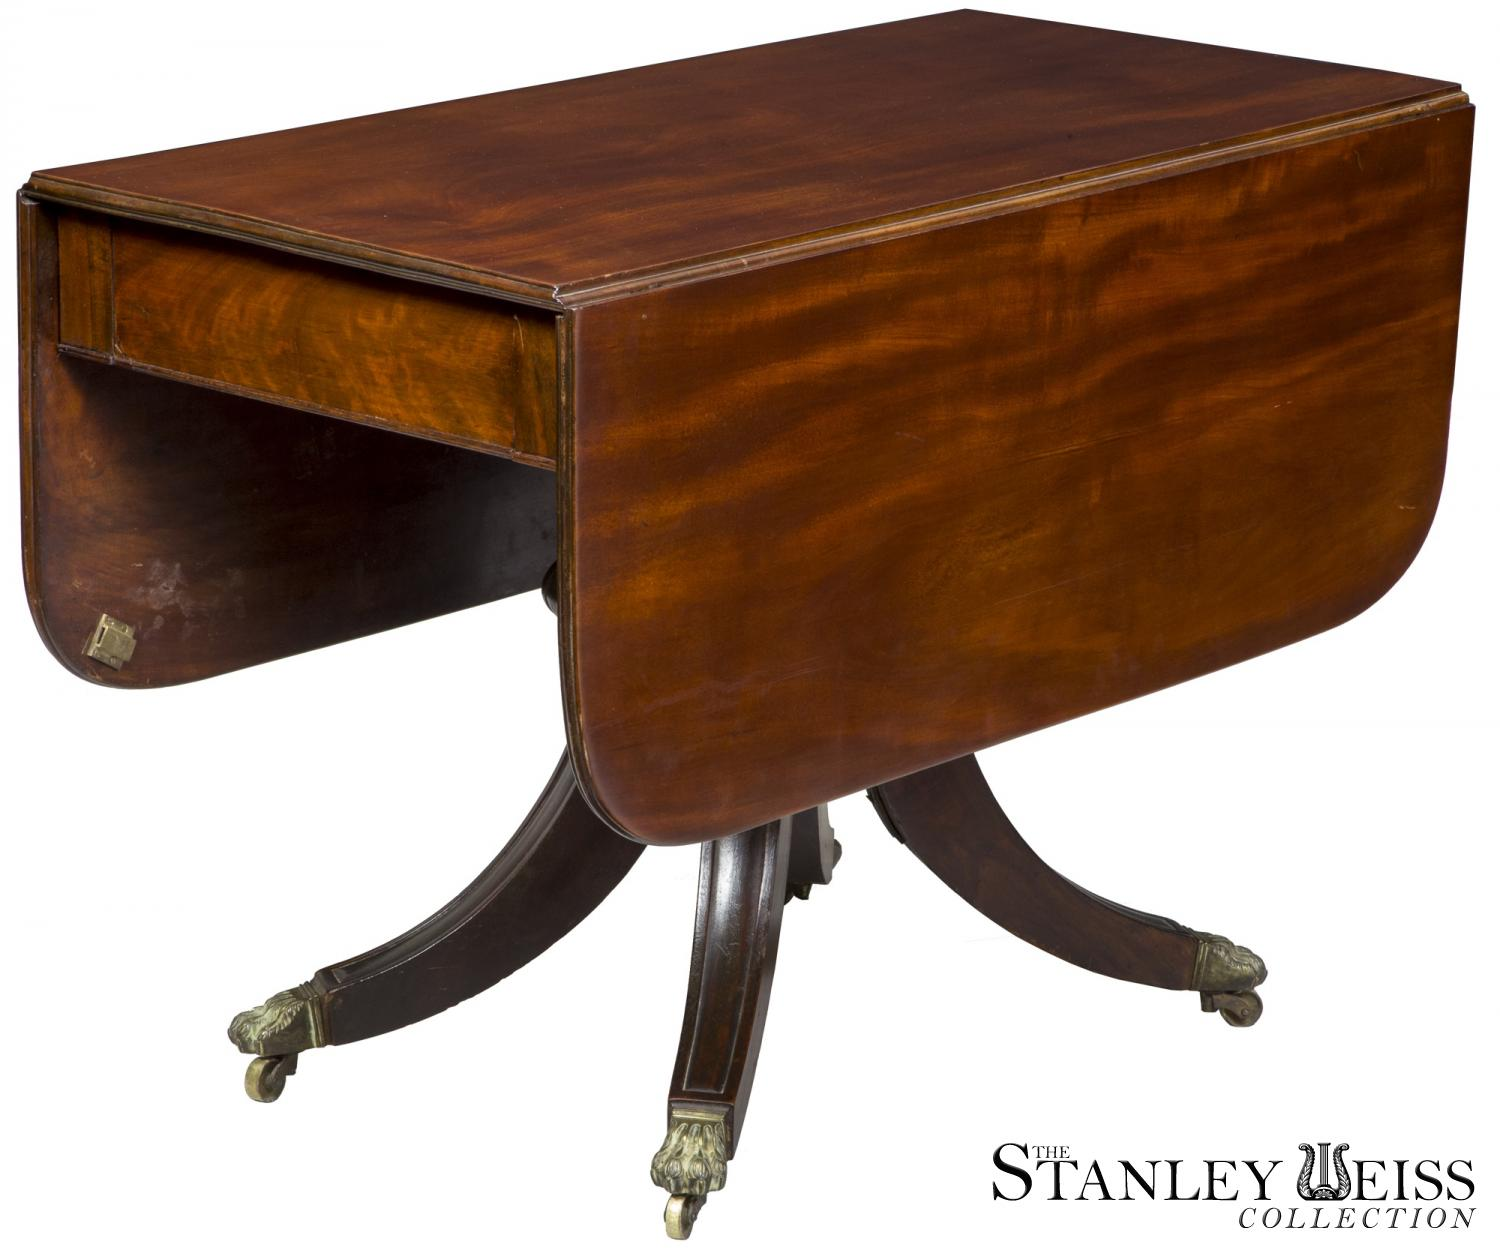 A Fine Classical Mahogany Pedestal Dining Room Table